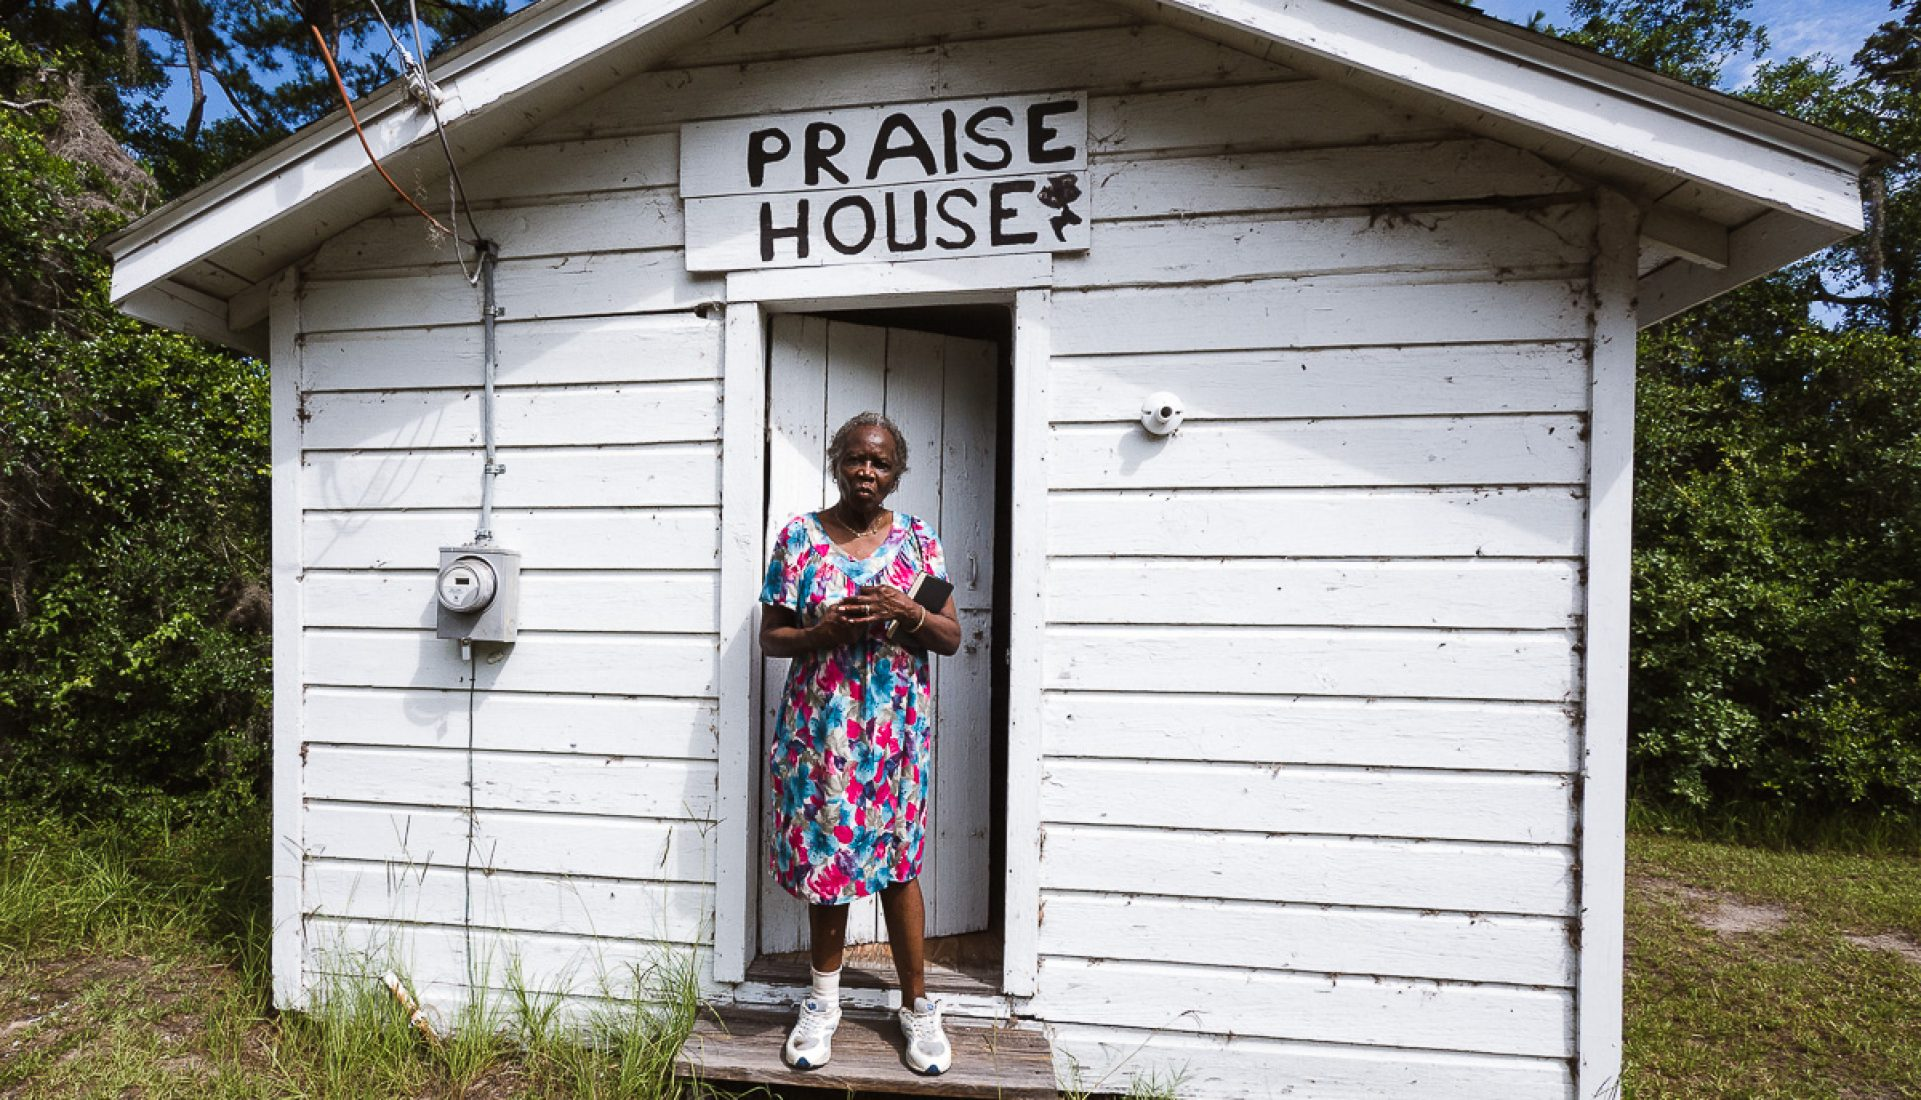 Mrs. Johnson and the Praise House